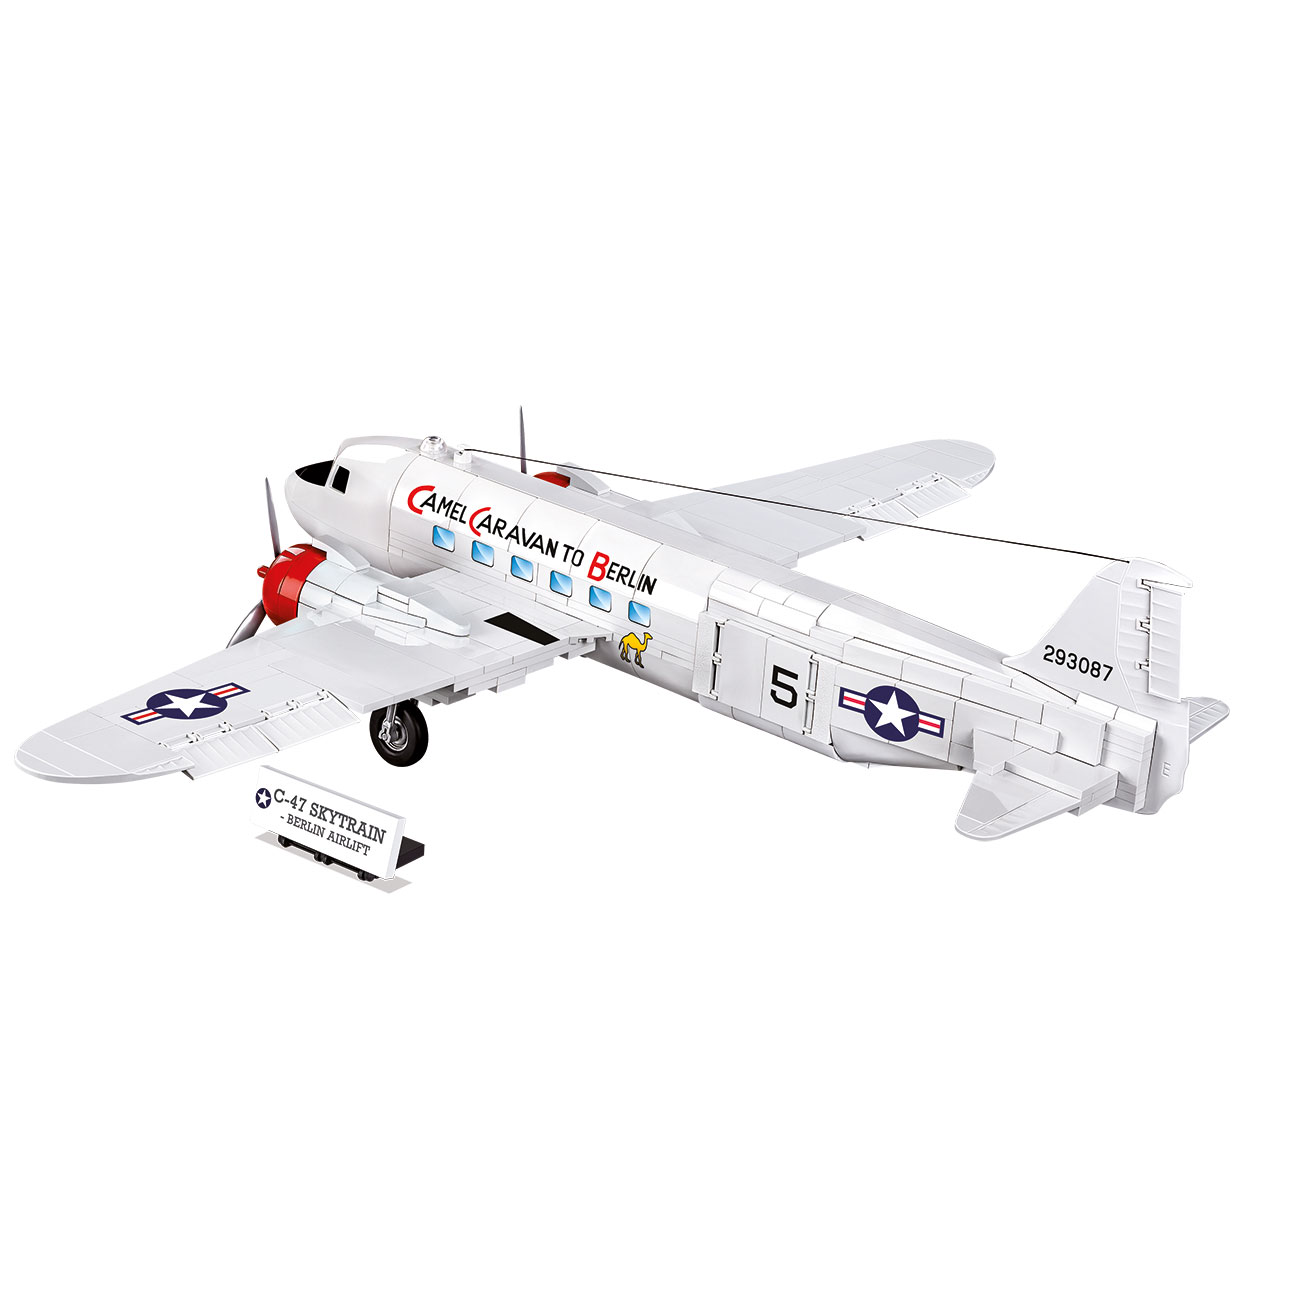 Cobi Historical Collection Bausatz Flugzeug C-47 Skytrain - Berlin Airlift 540 Teile 5702 2